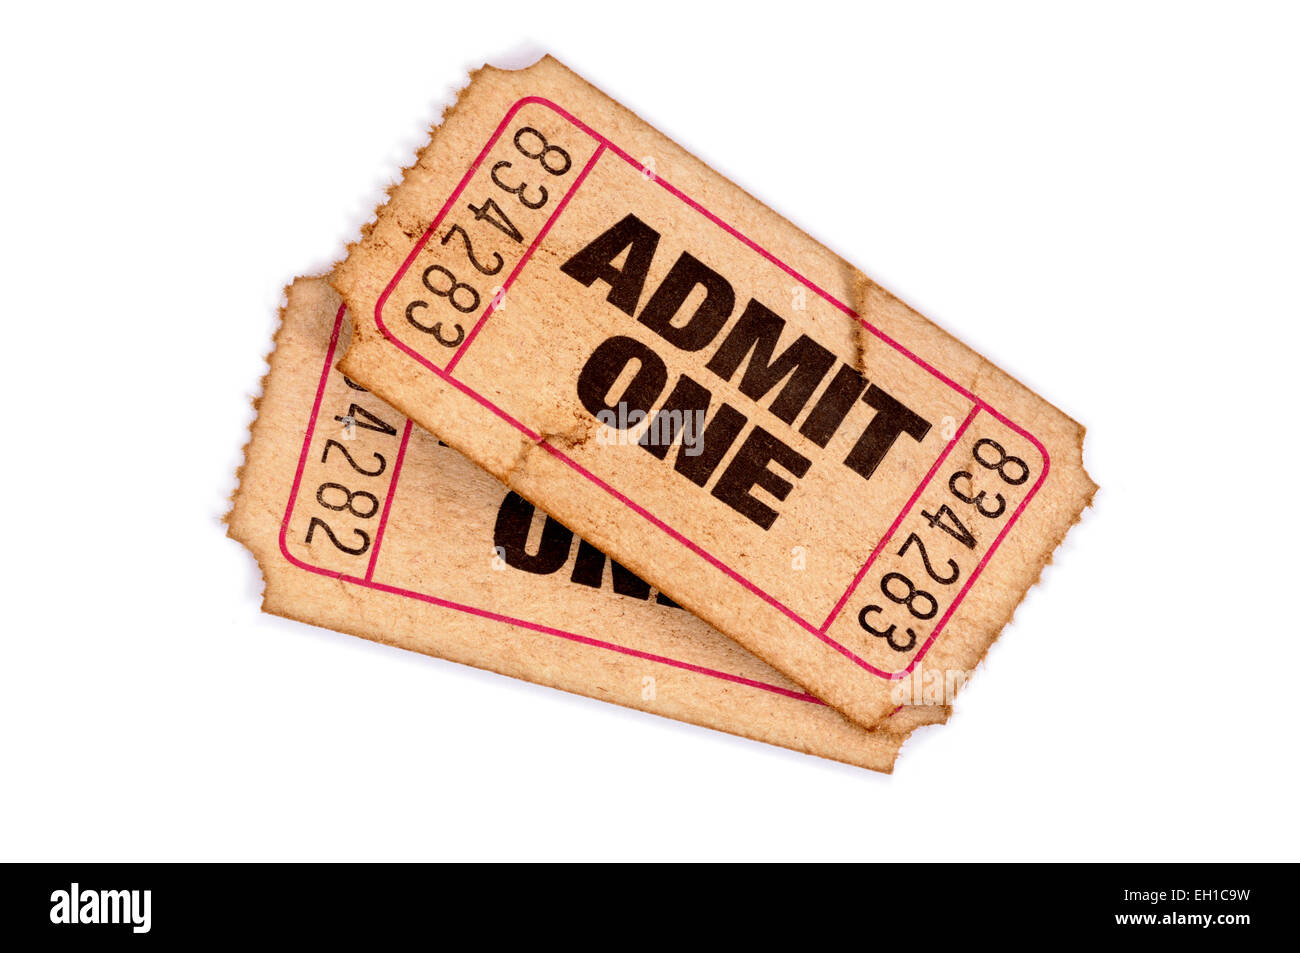 Two old torn movie tickets on a white background. - Stock Image